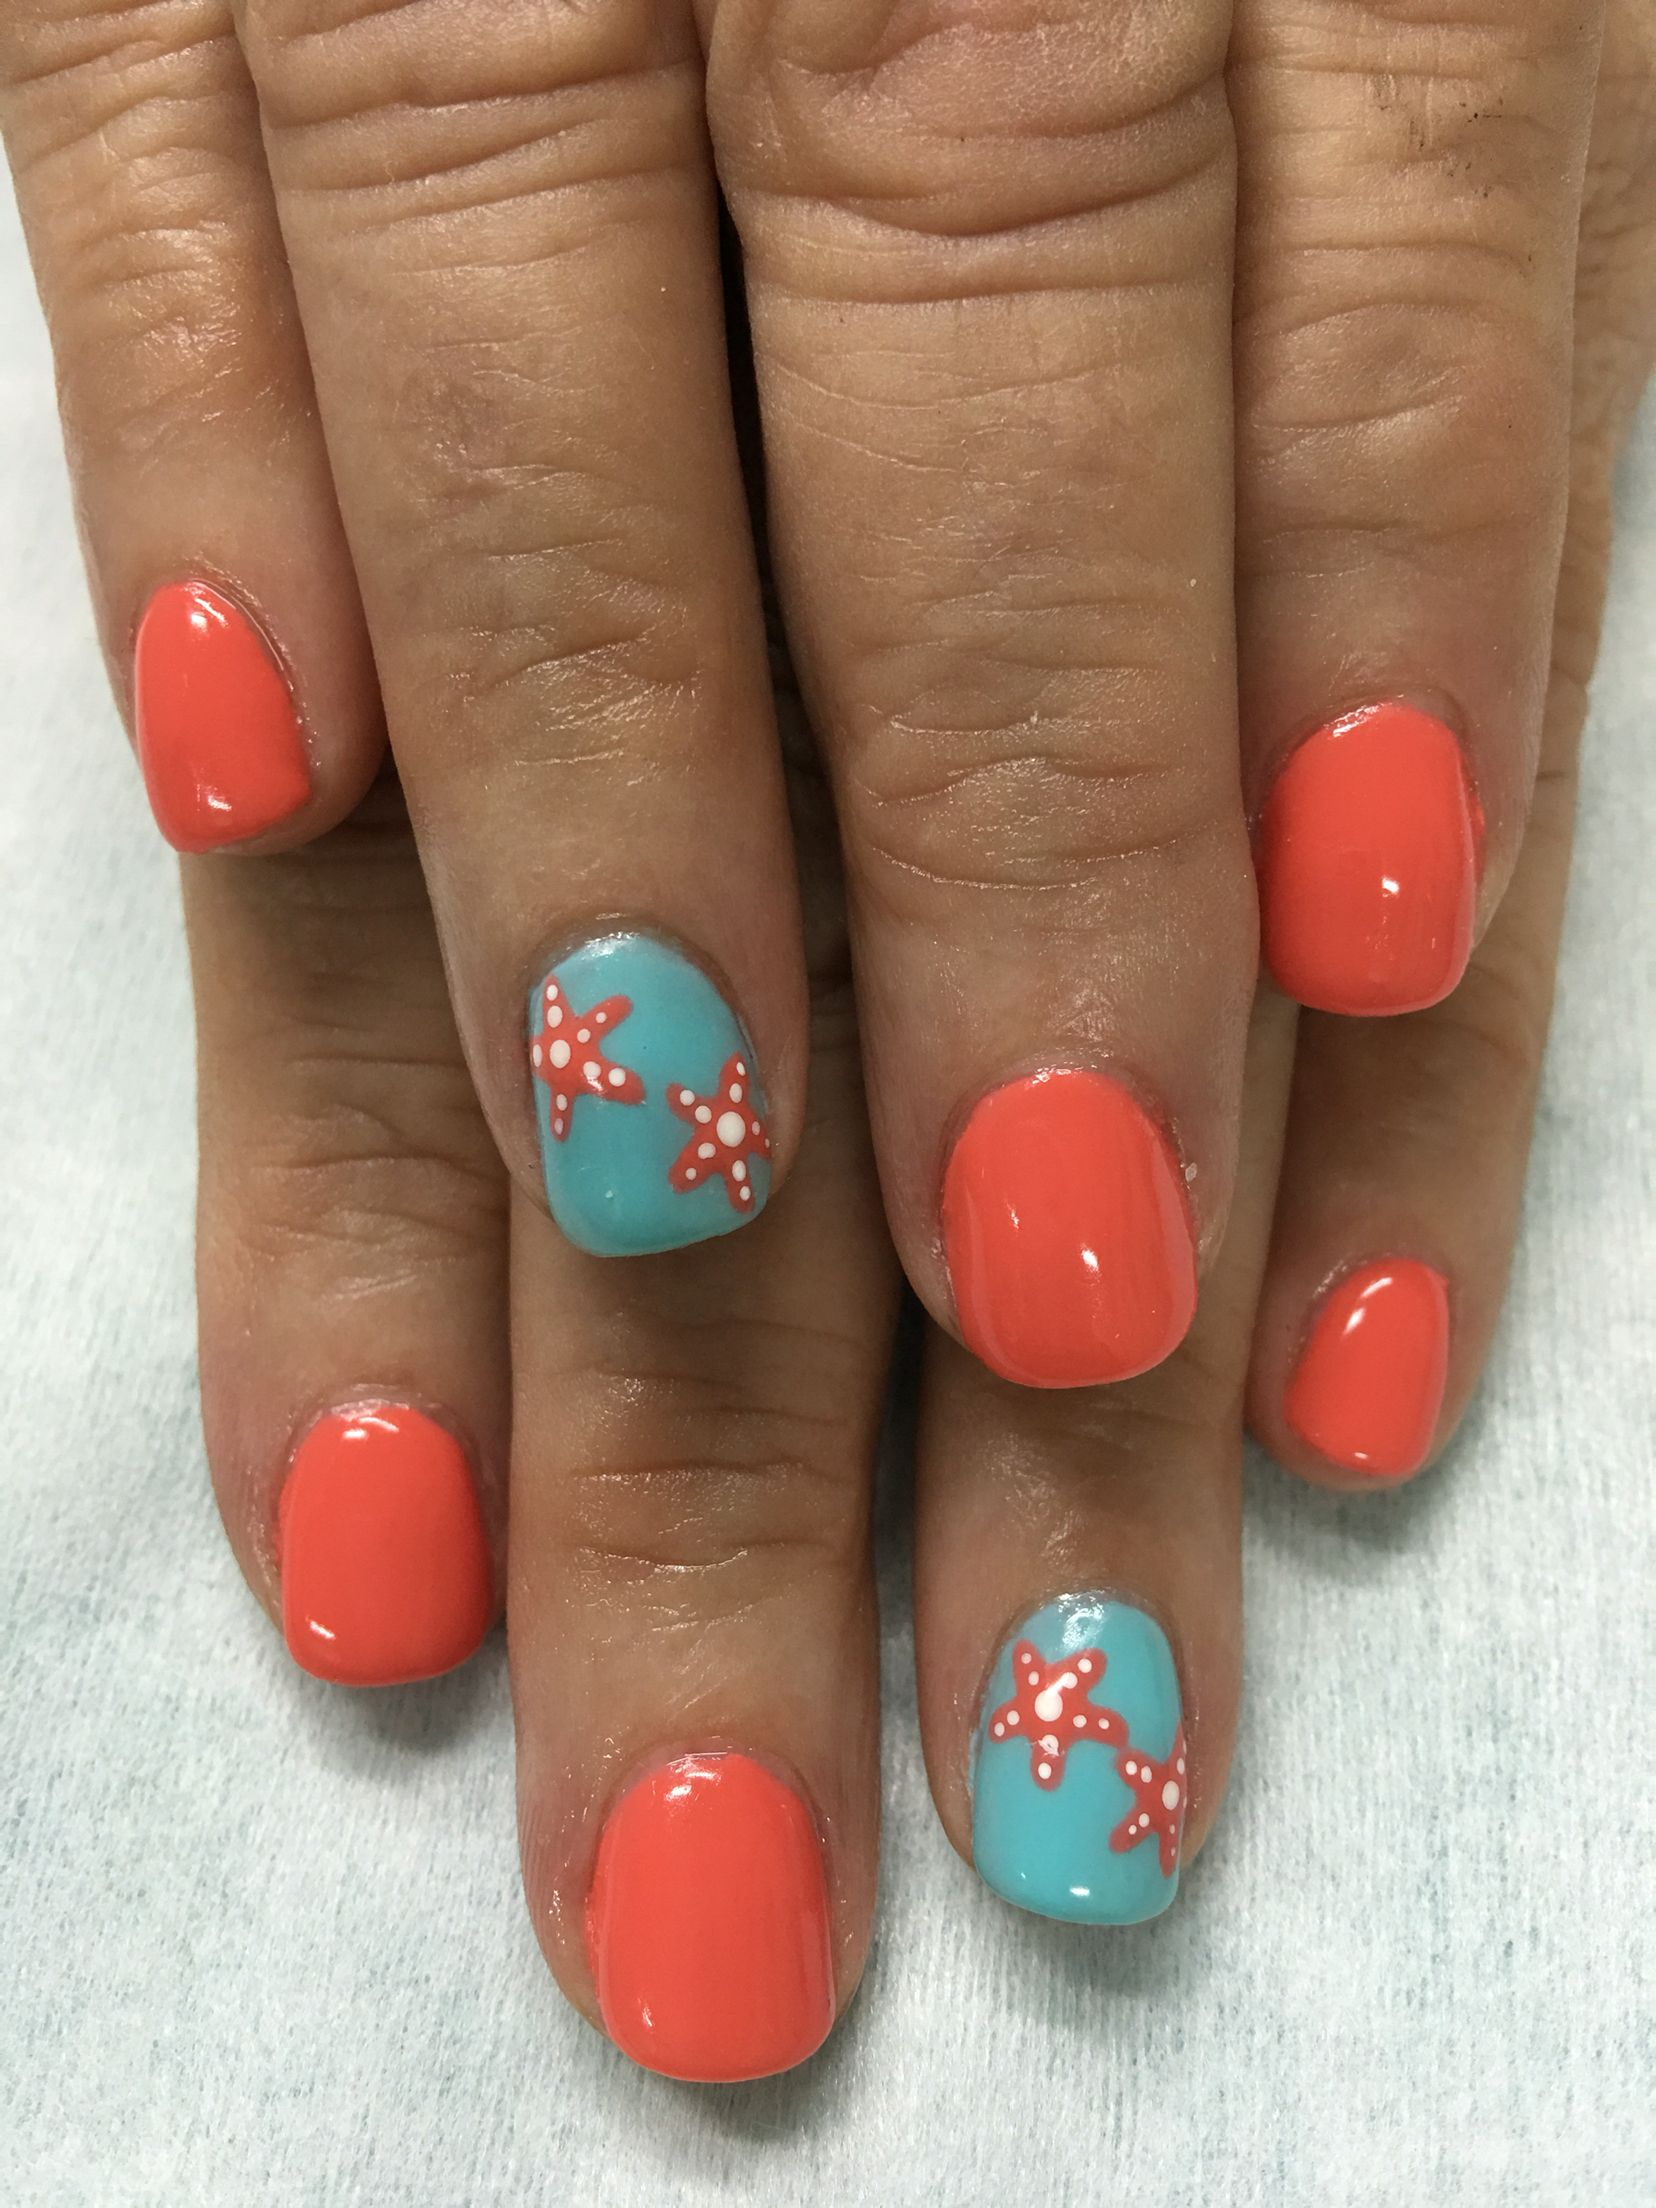 Summer Vacation Beach Orange Sky Blue Starfish Gel Nails Summer Gel Nails Beach Gel Nails Nail Designs Summer Gel